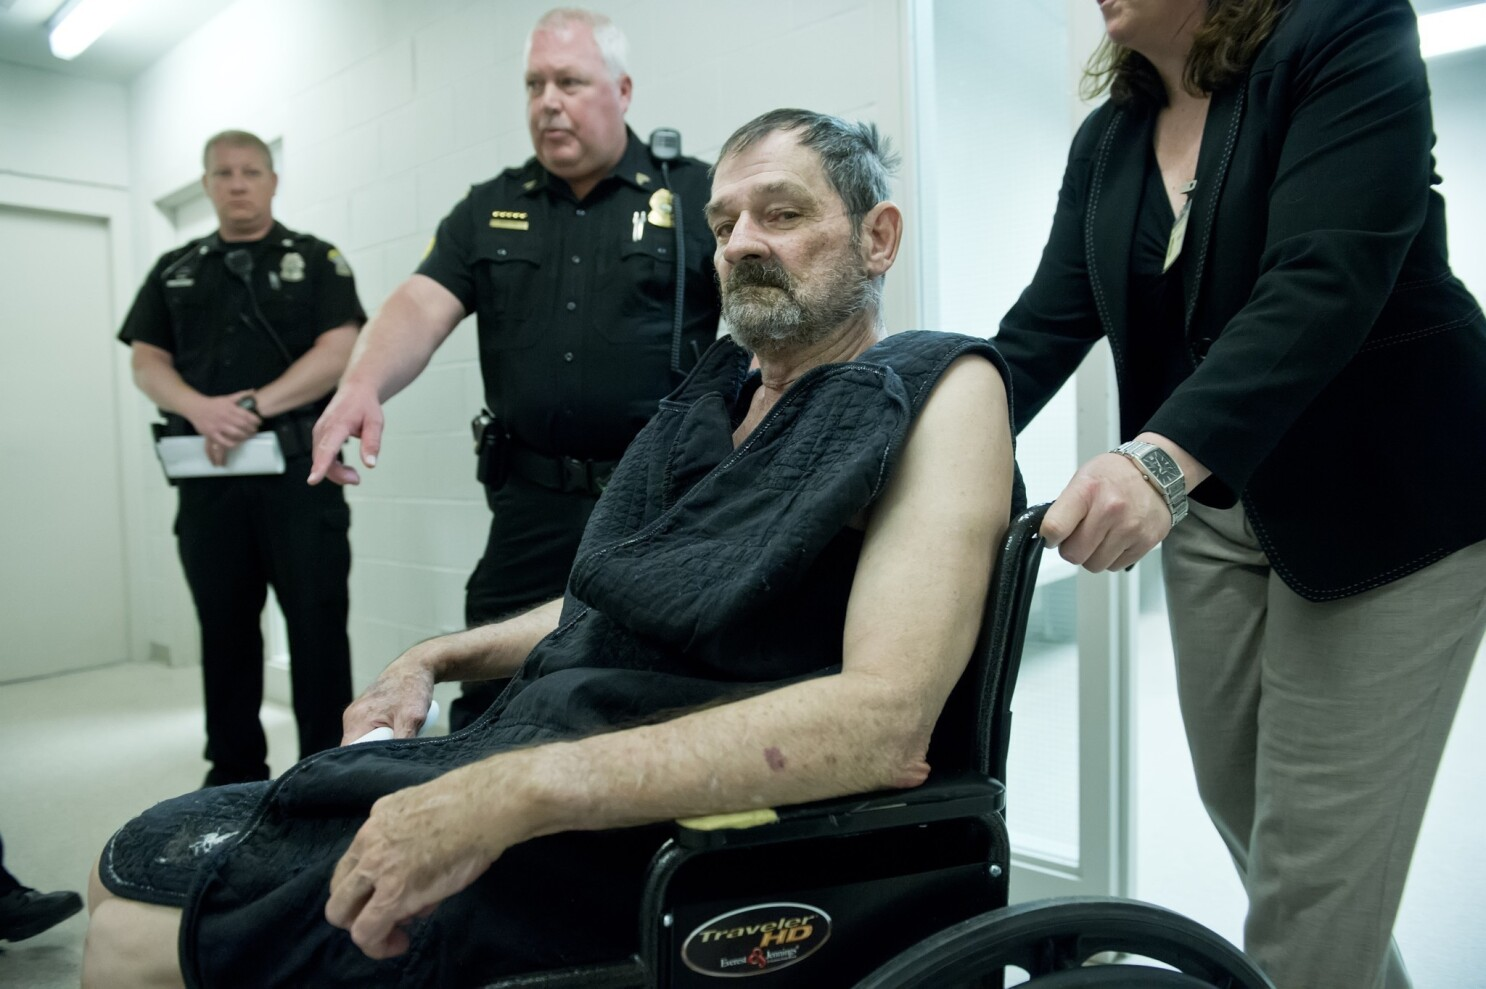 Jury Recommends Death Penalty For White Supremacist Who Killed 3 At Kansas Jewish Sites Los Angeles Times